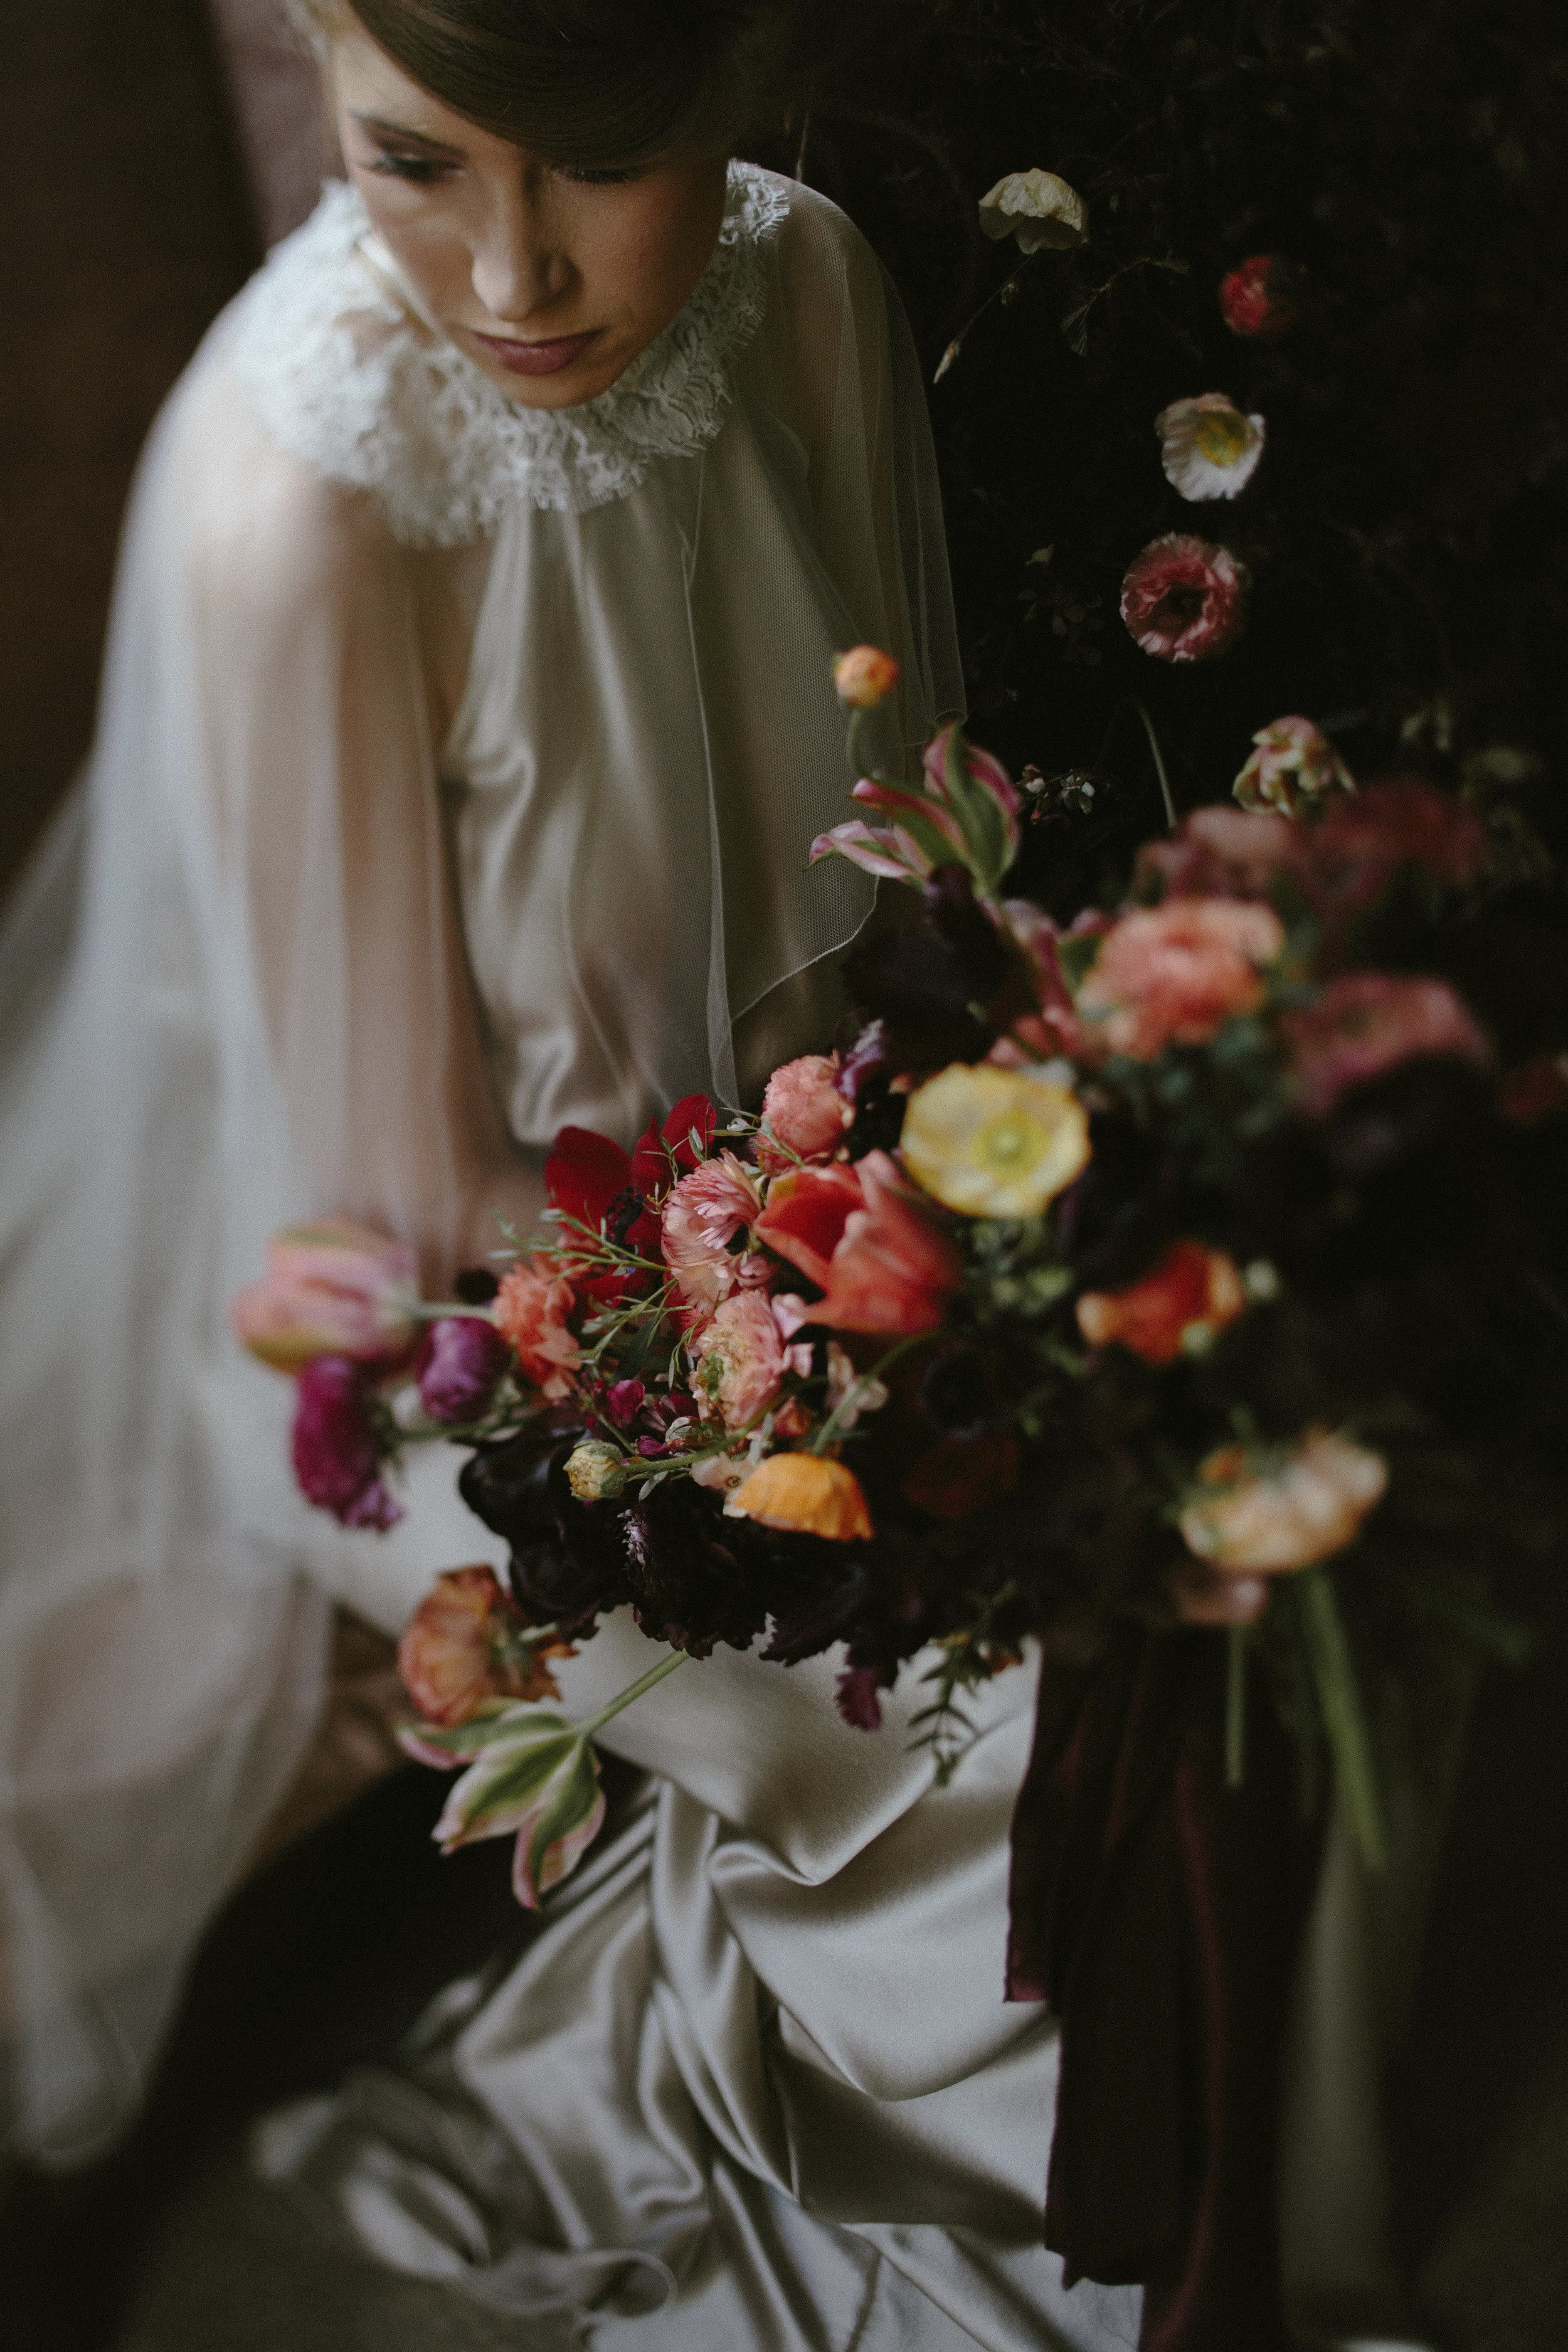 Agnes-and-bee-Kate-Beaumont-wedding-dresses-Ruth-Atkinson-23.jpg